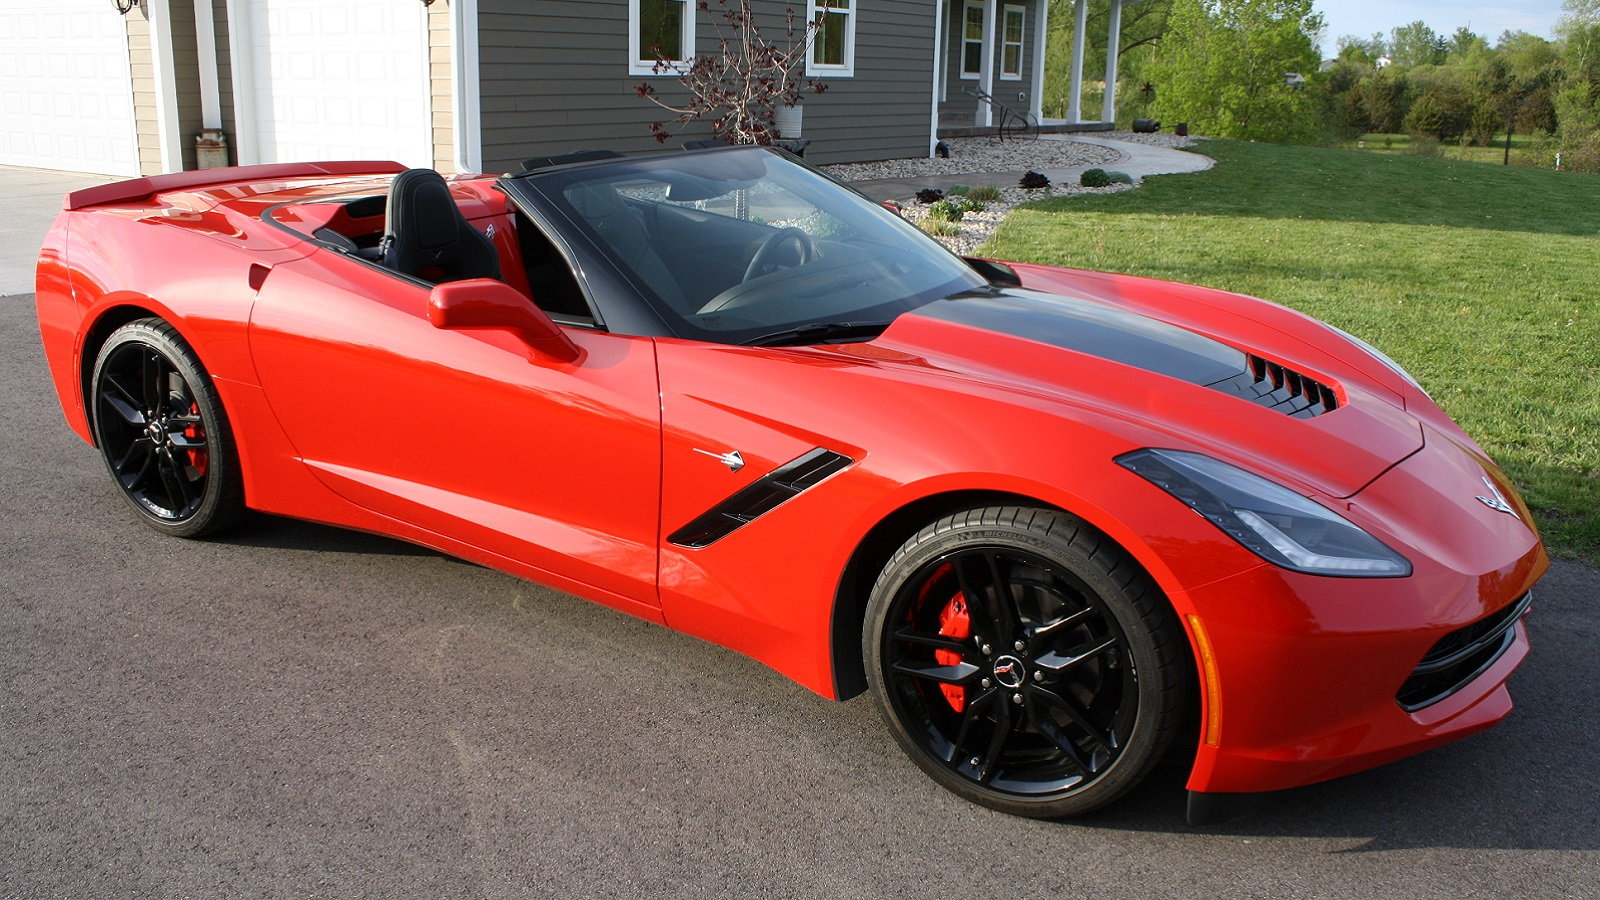 2015 Corvette Convertible – 3.7 seconds